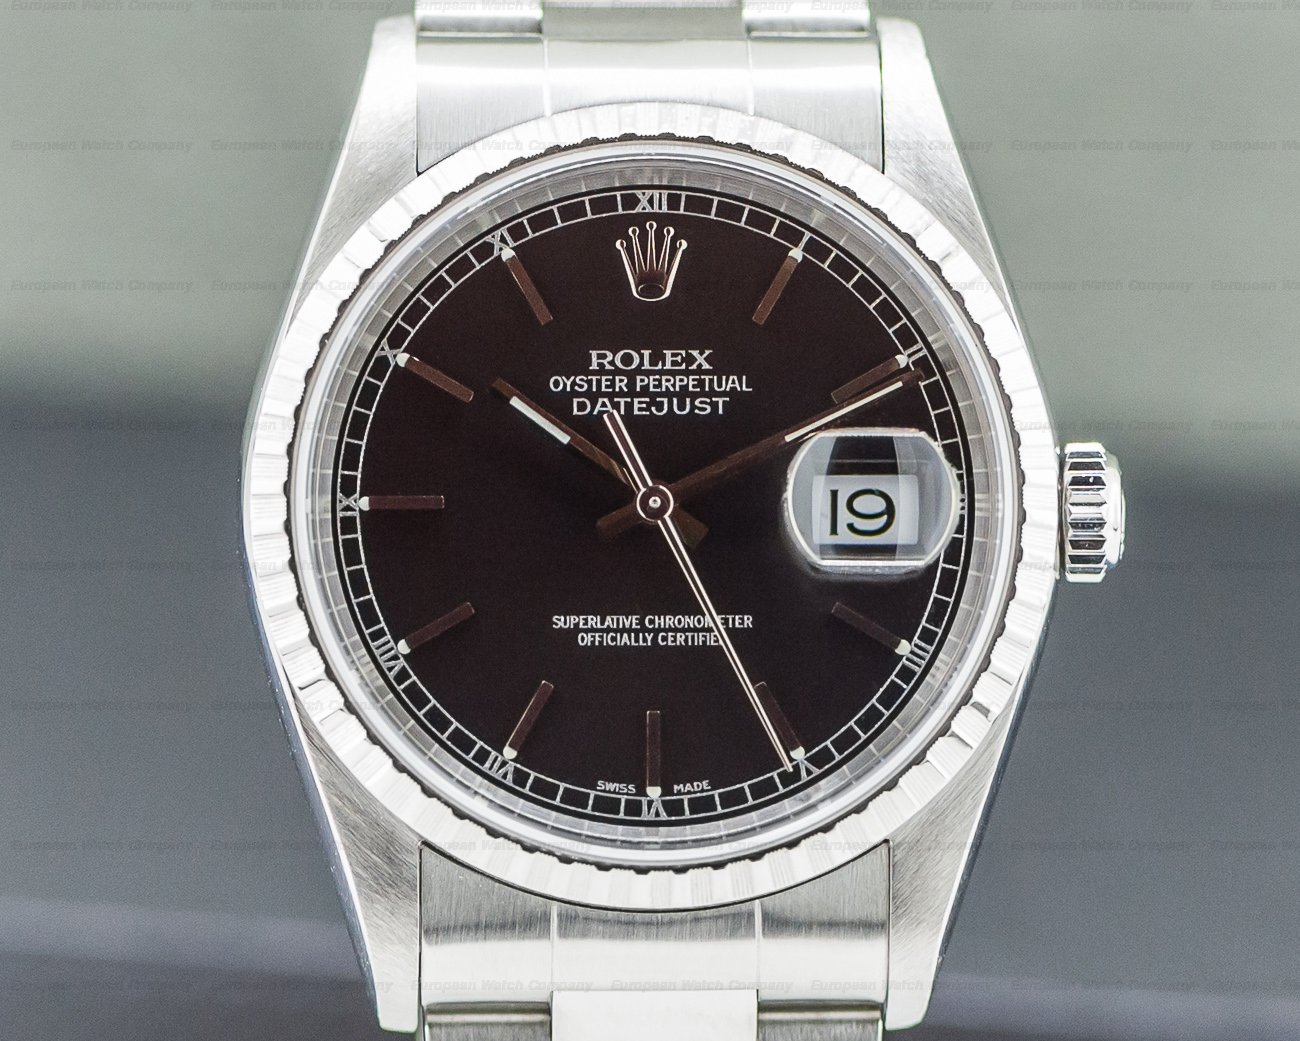 Rolex 16220 Datejust Black Dial SS Oyster